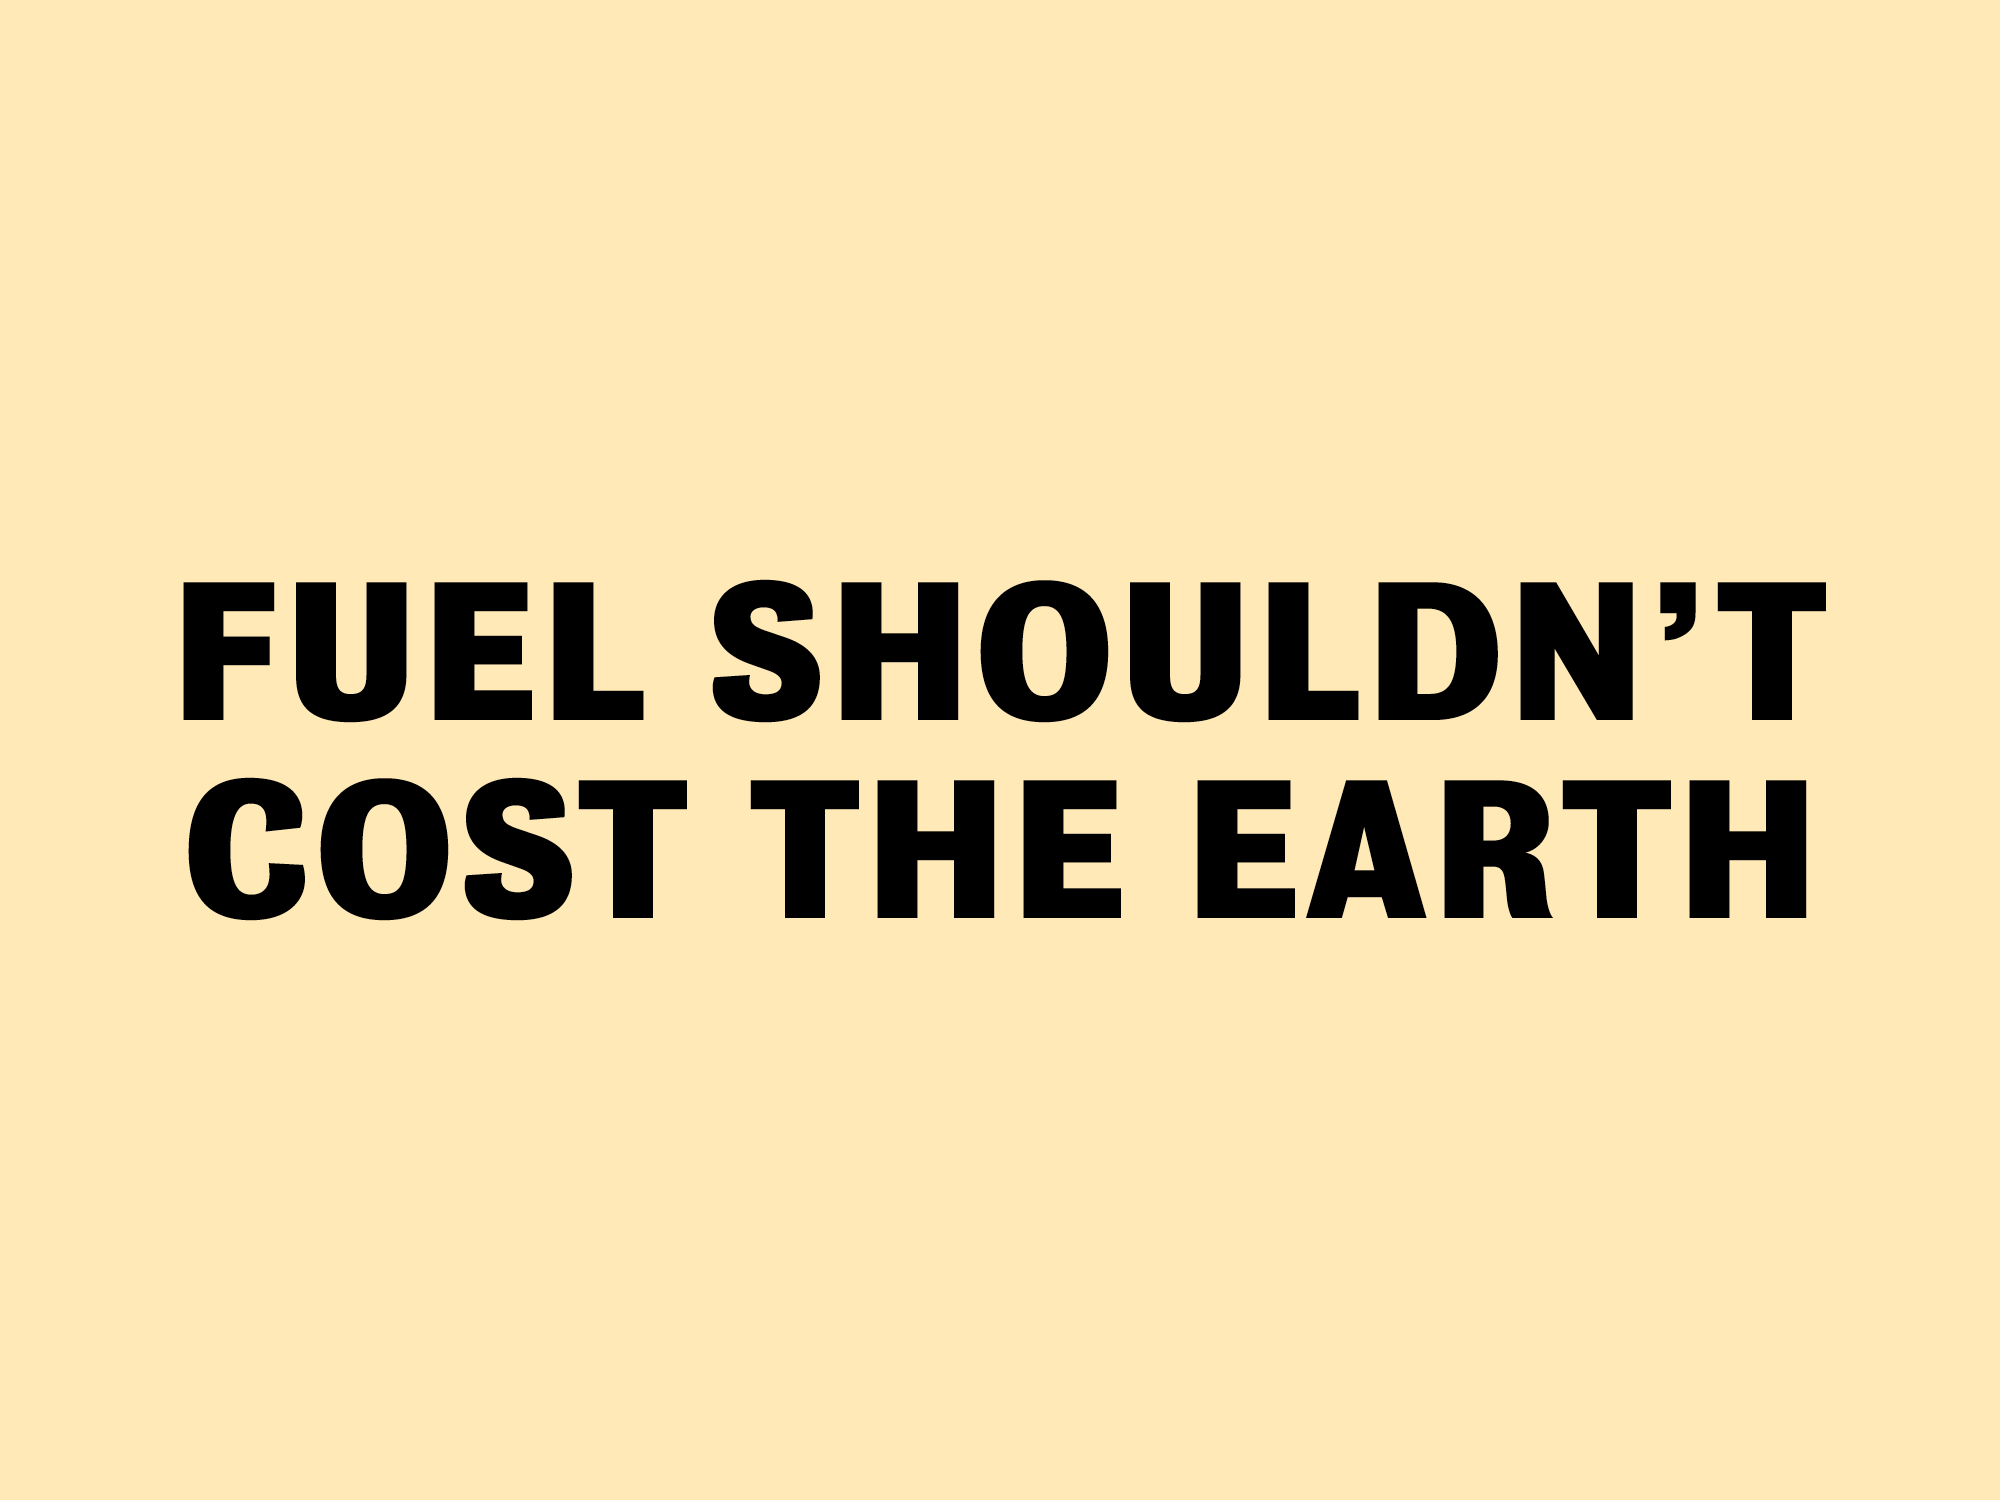 ON EARTH DAY, WE WANT TO TALK ABOUT FUEL POVERTY.